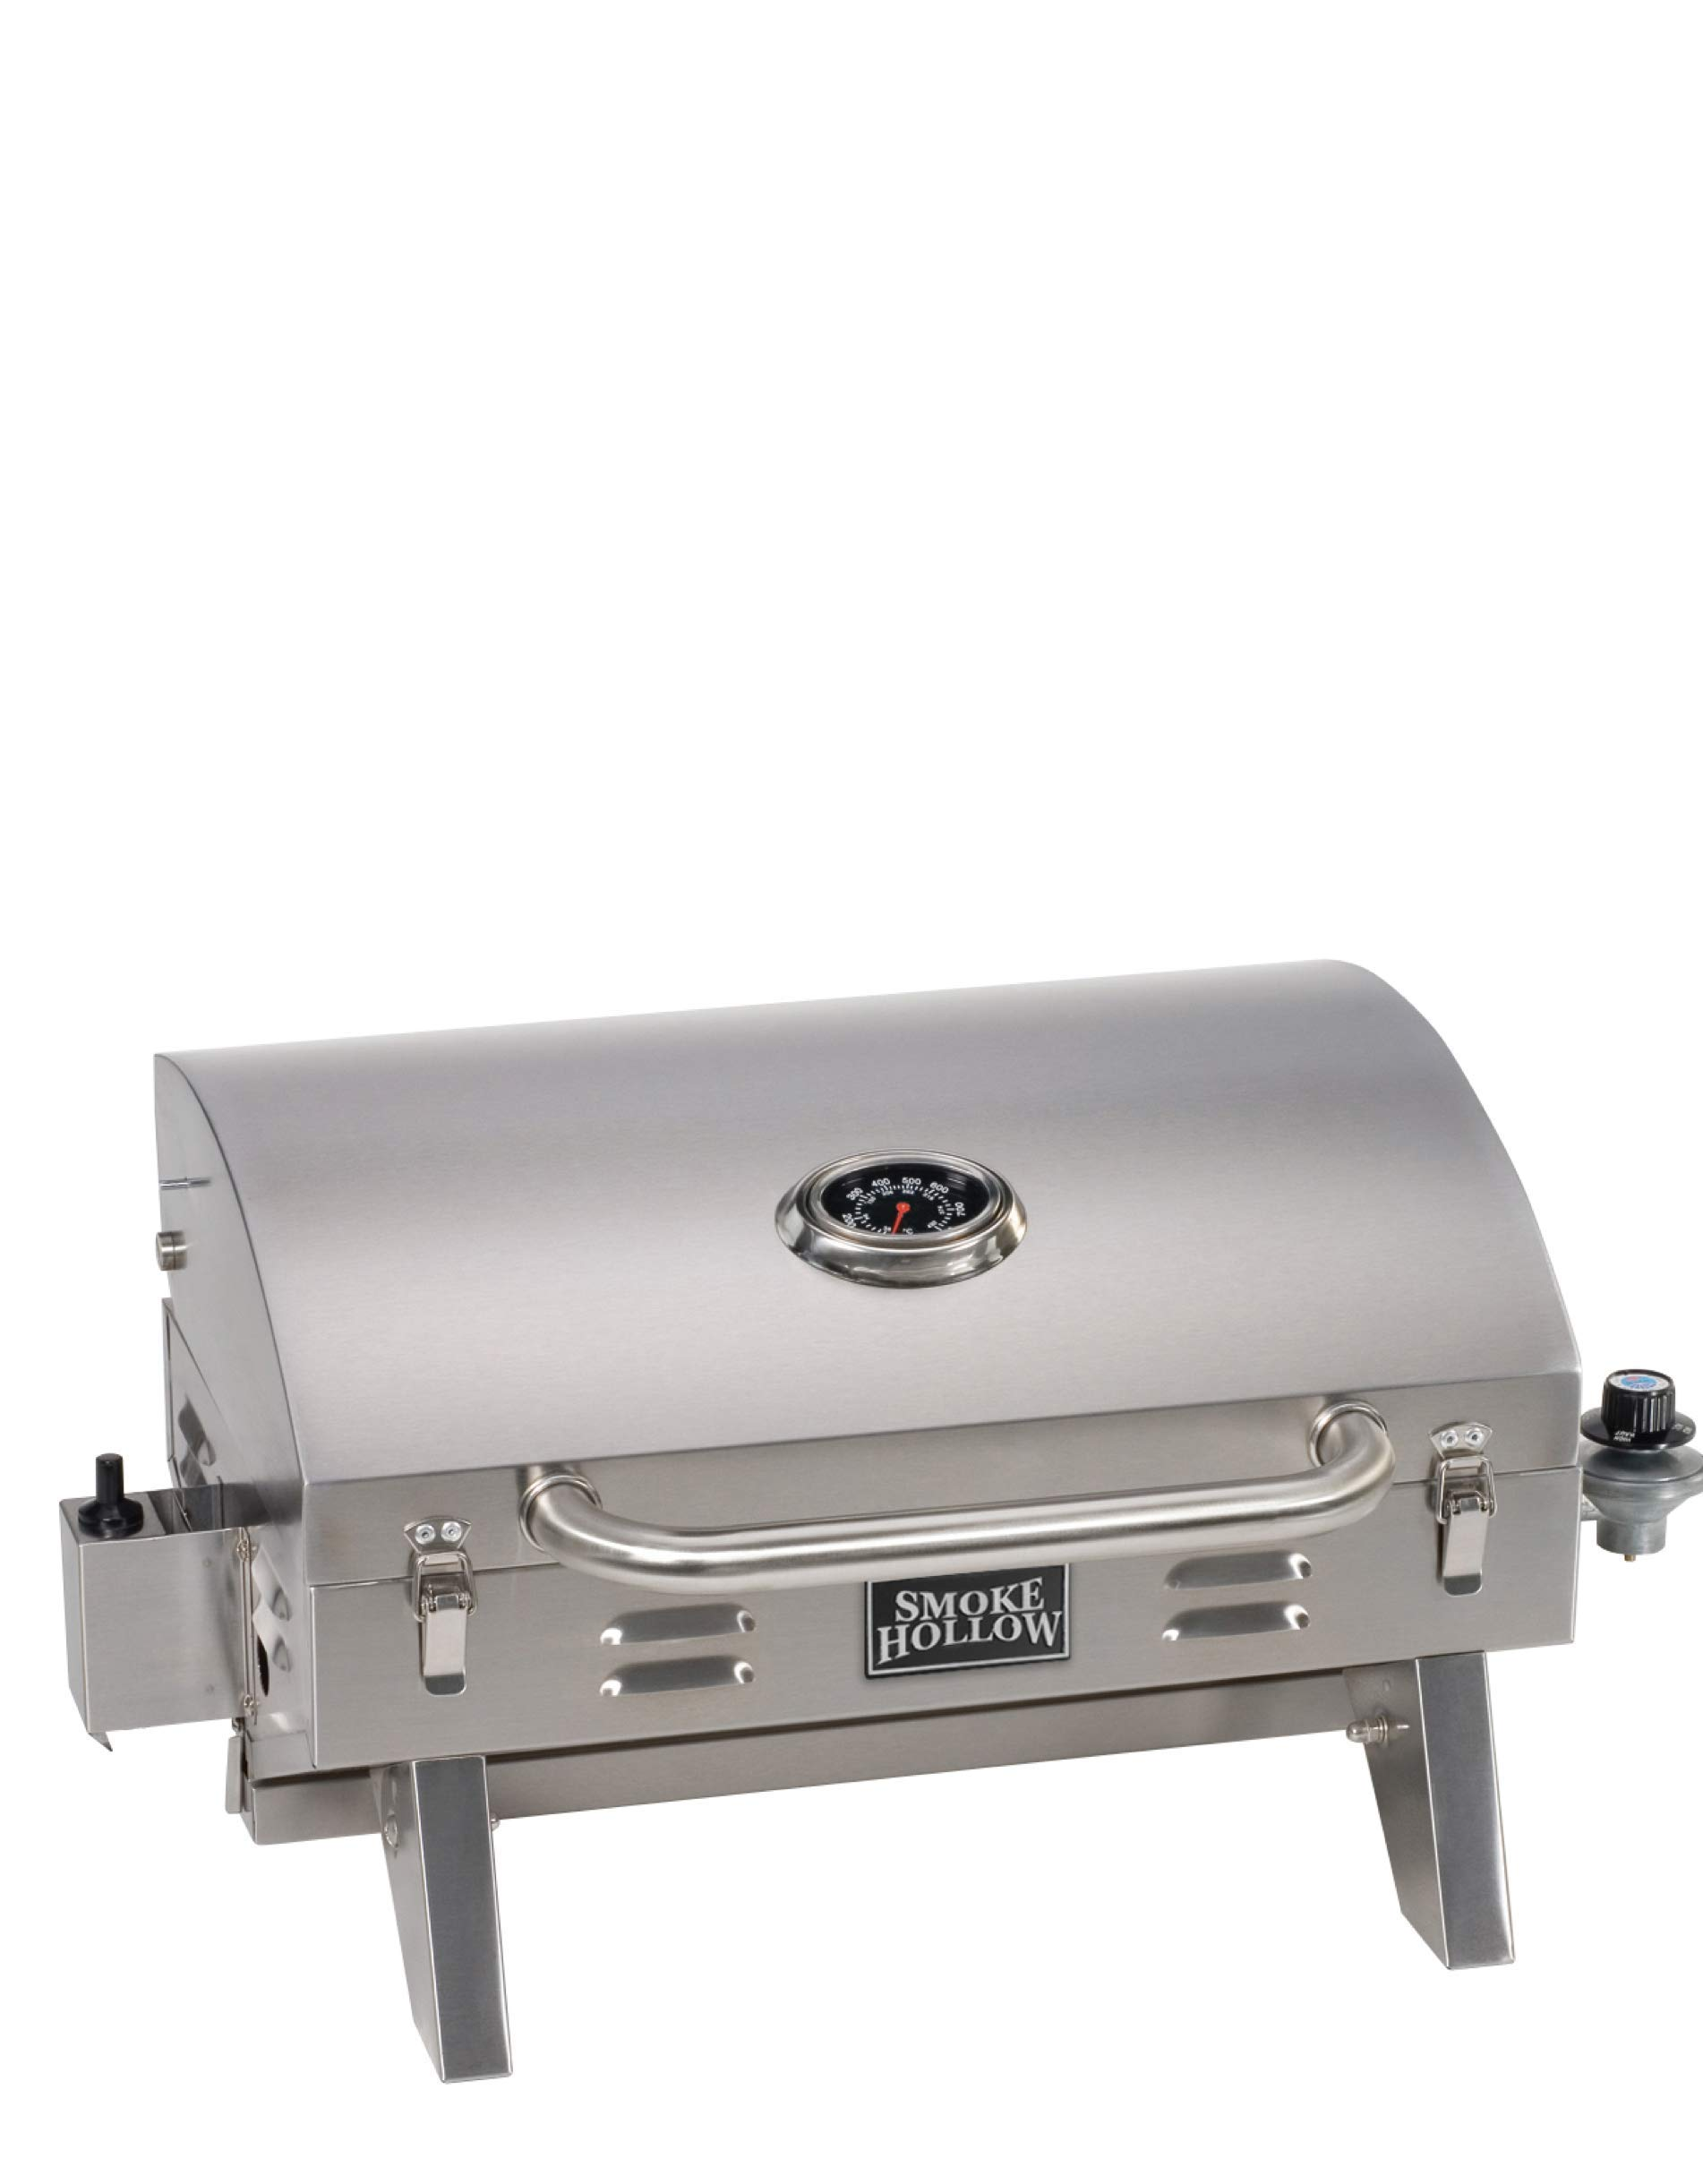 Masterbuilt Smoke Hollow PT300B Propane Tabletop Grill, Stainless Steel by Masterbuilt